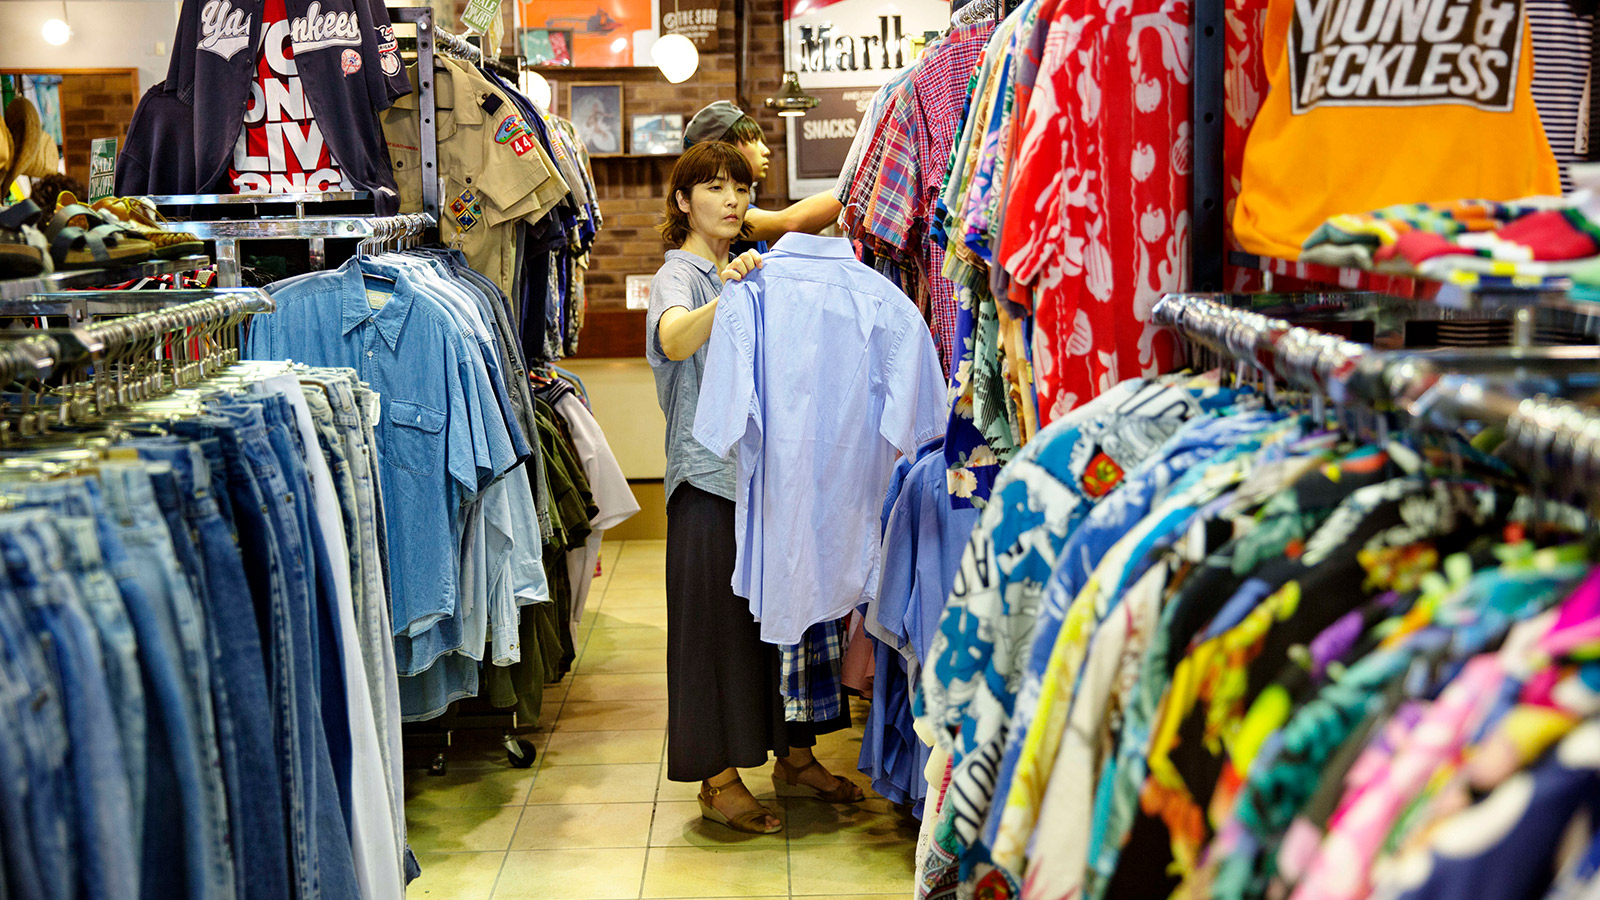 A women looks at second hand clothing at a second hand shop in Tokyo, Japan.